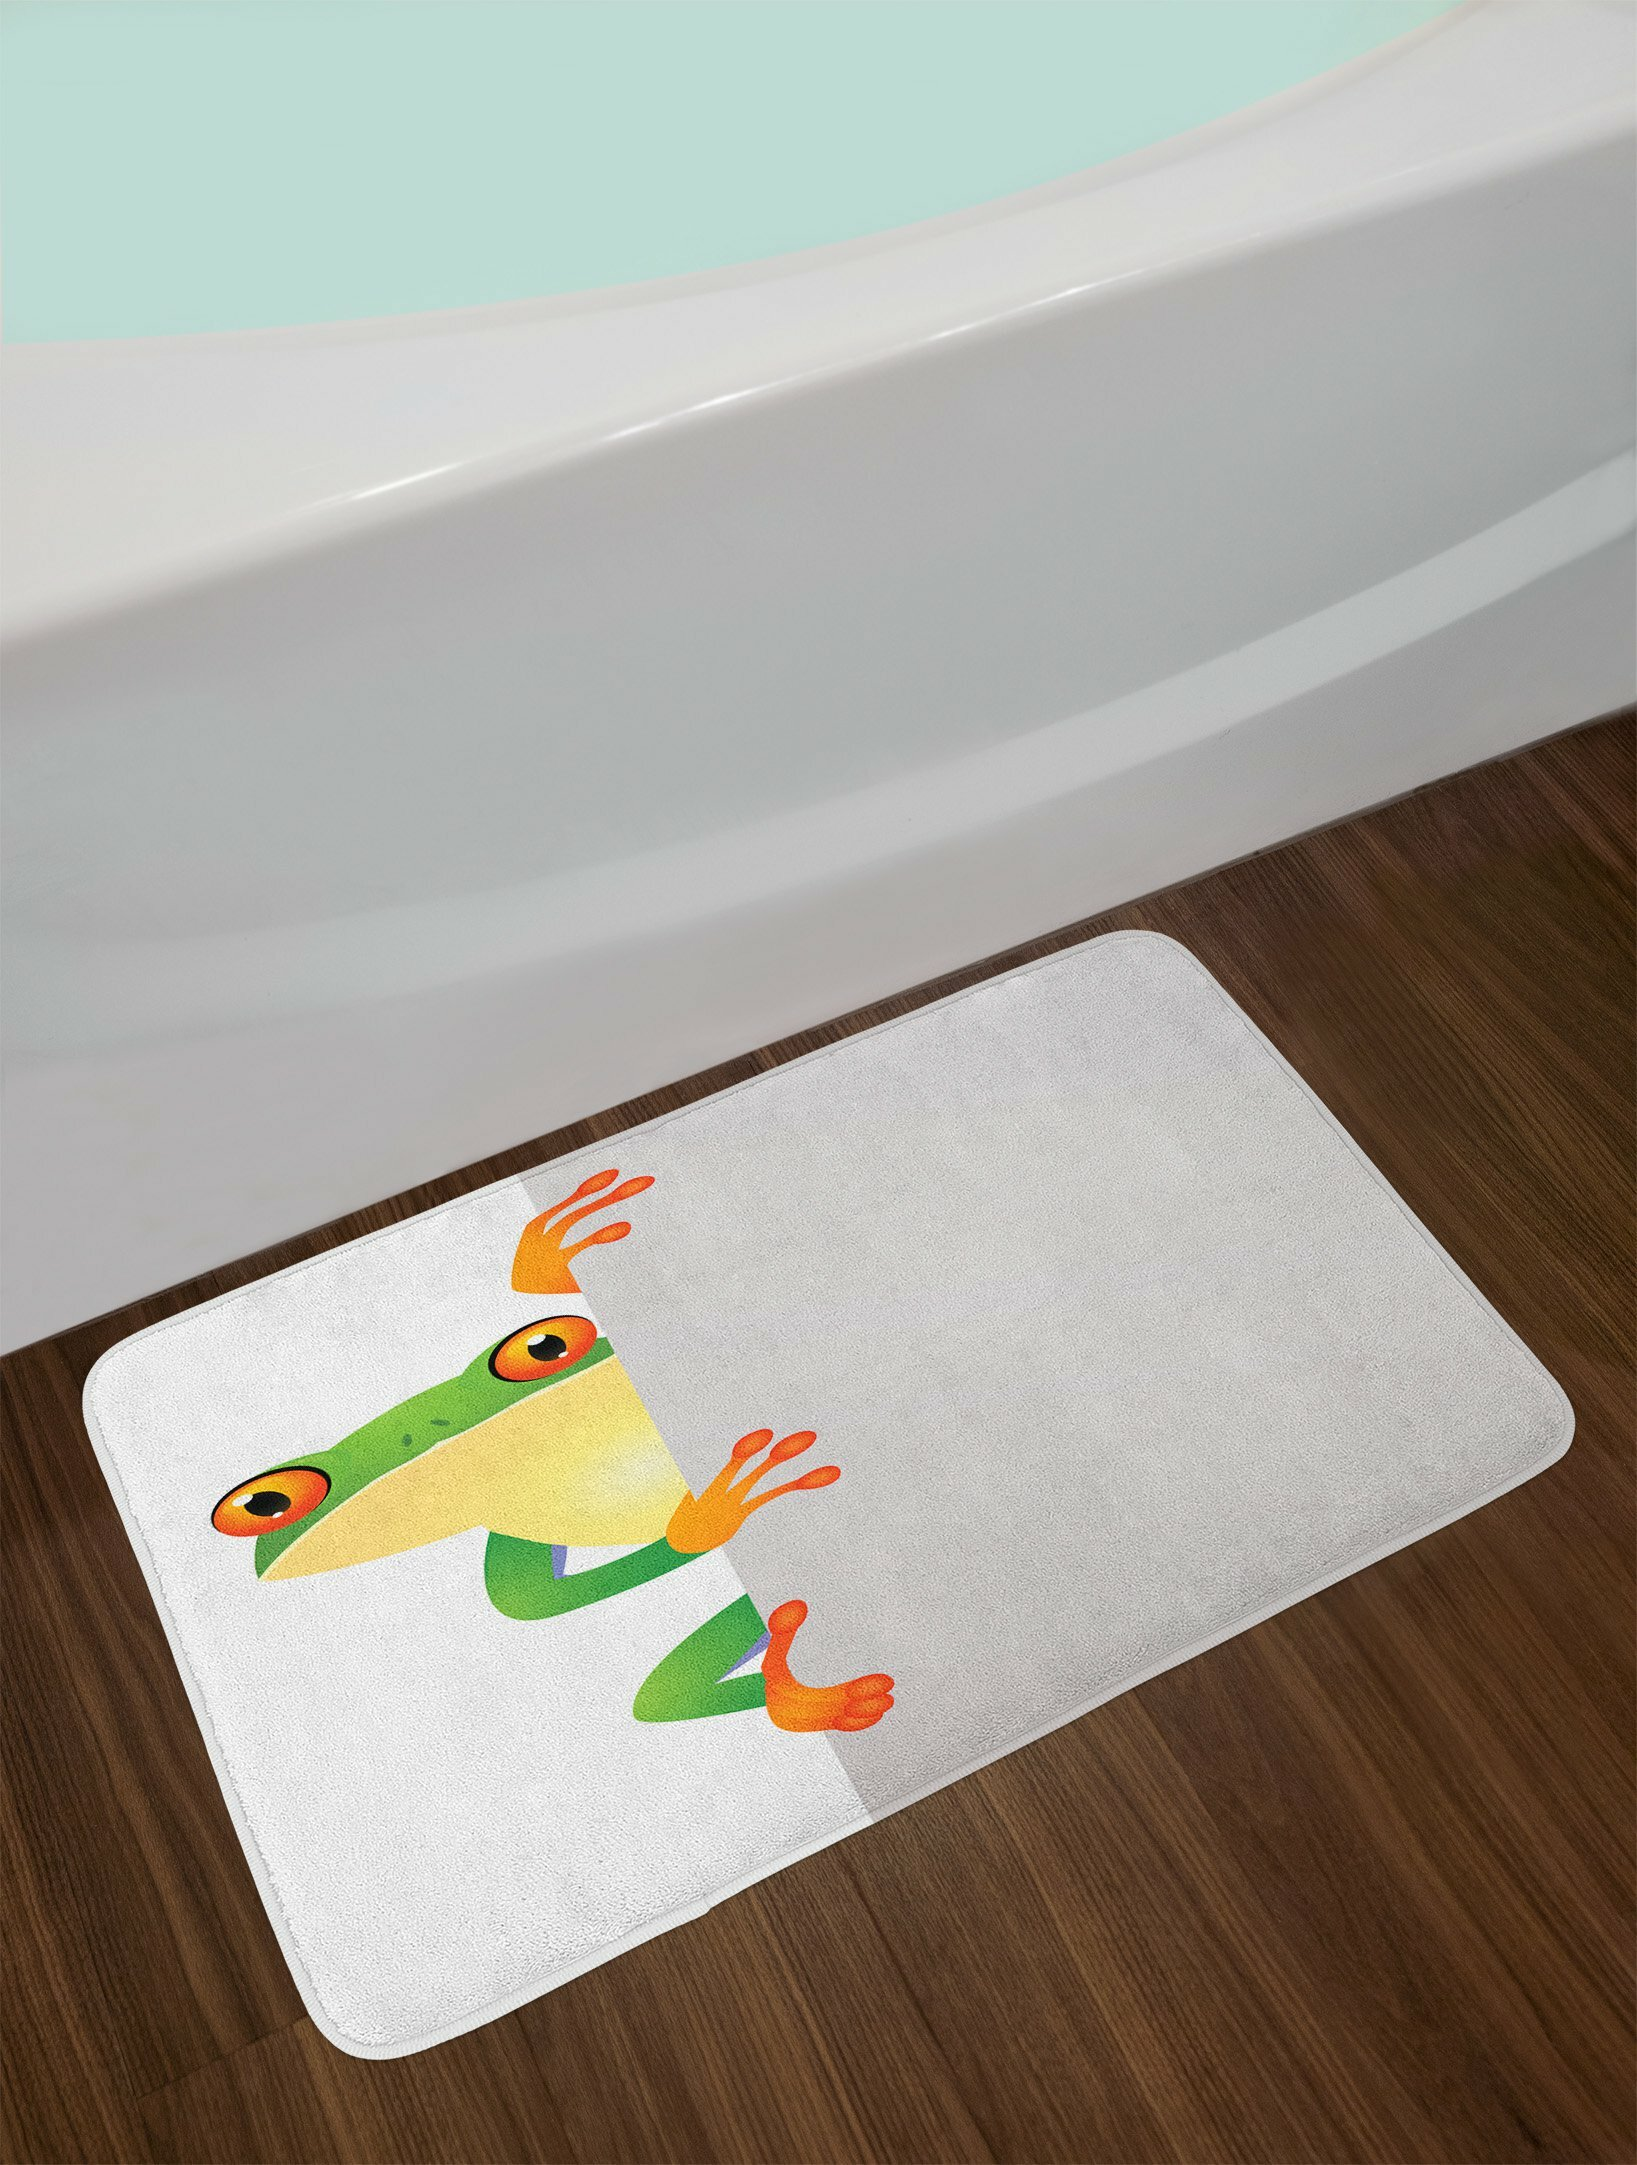 East Urban Home Reptile Funky Frog Prince With Eyes On Wall Camouflage Nursery Theme Non Slip Plush Bath Rug Wayfair